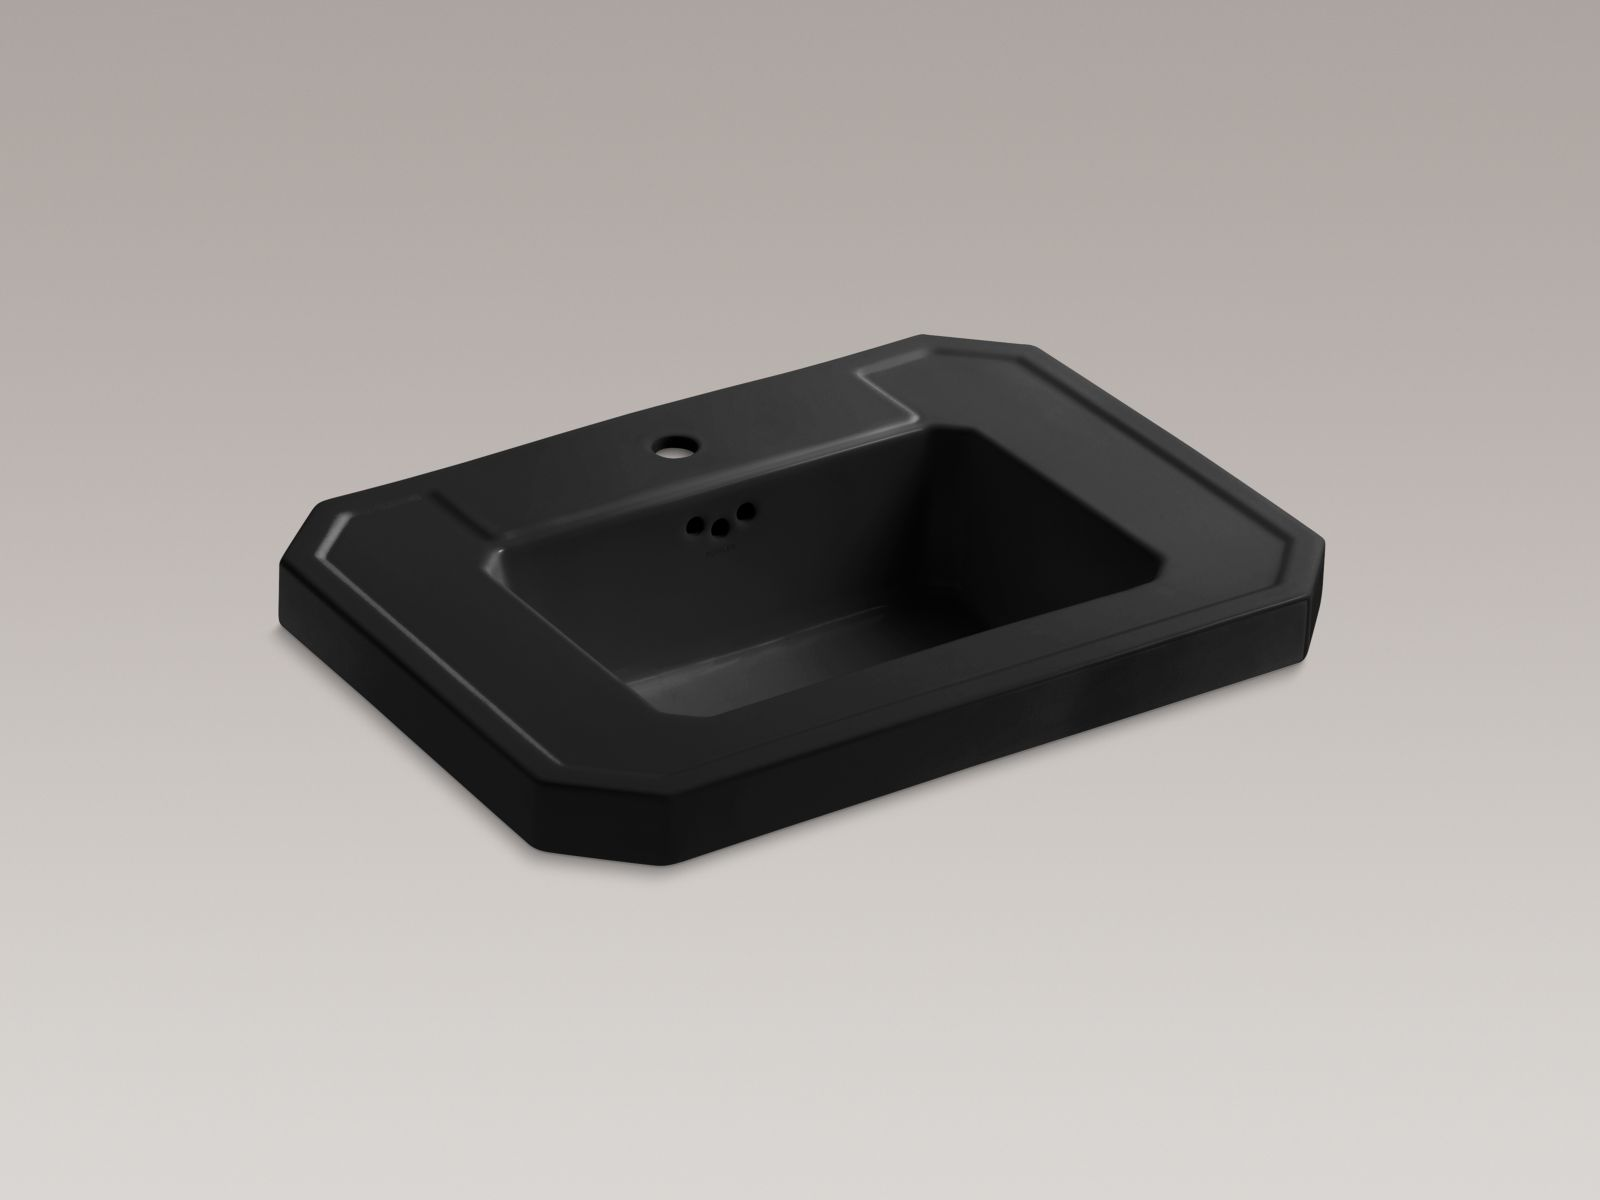 Kohler Kathryn® K-2323-1-7 Bathroom sink basin with single faucet hole Black Black